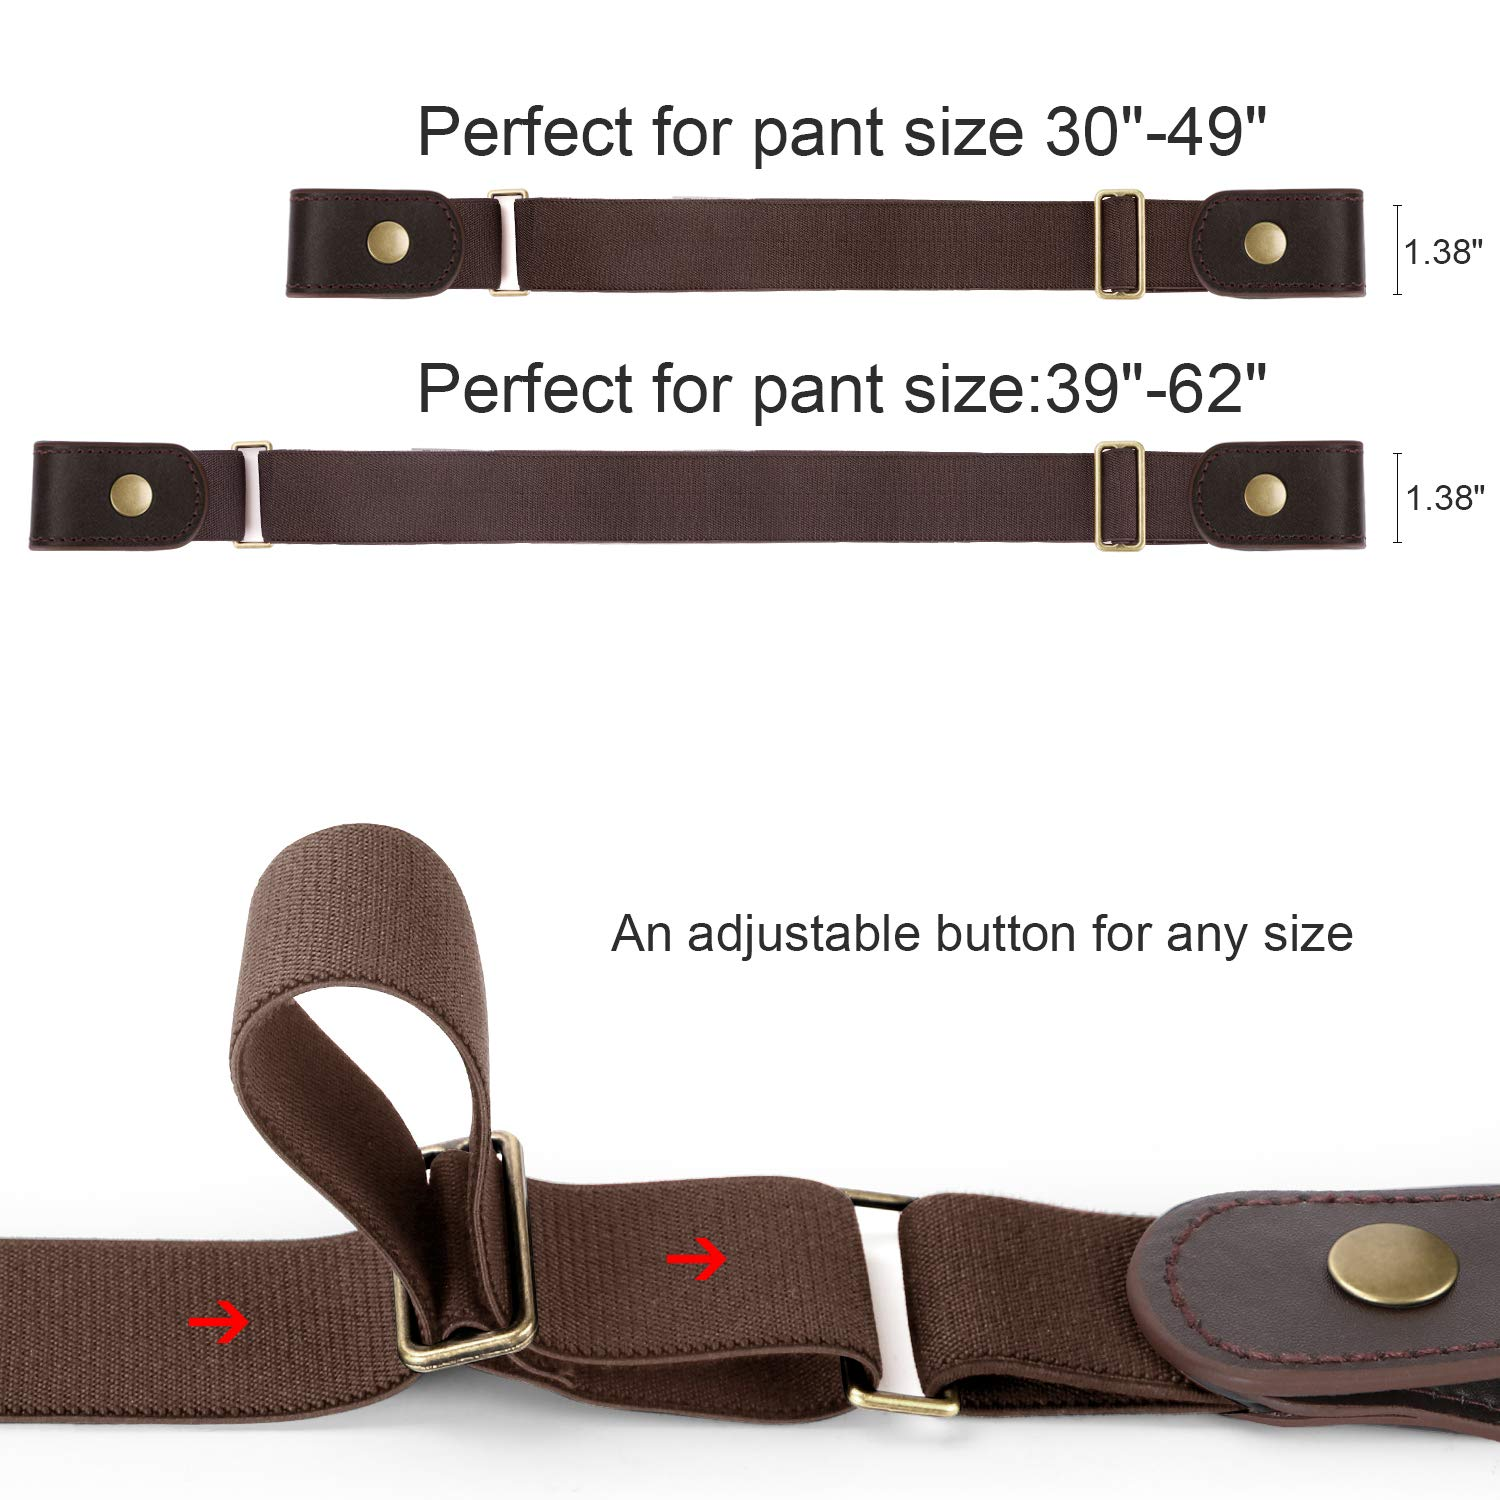 No Buckle Stretch Belt Invisible Adjustable Elastic Waist Belt for Jeans Pants,Coffee,Suit for Pants Size 30\